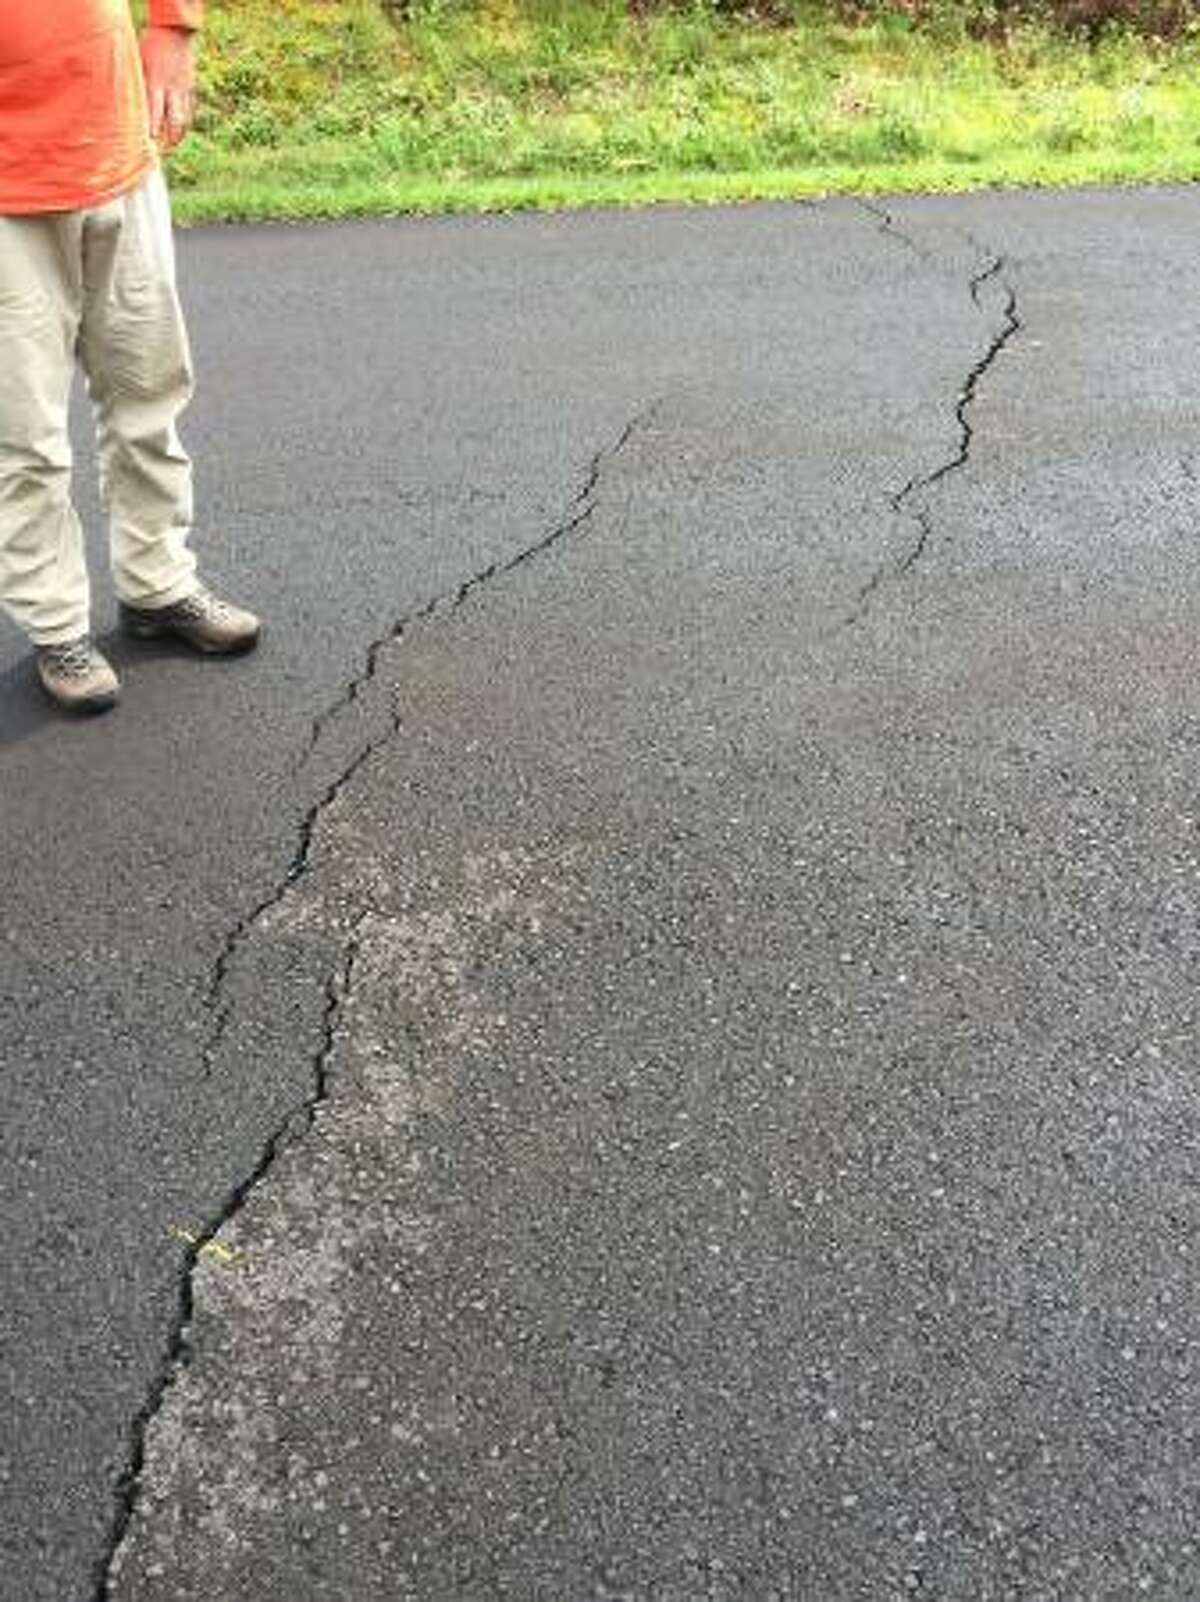 May 1, 2018: Cracks appear in roads in and around Leilani Estates USGS reports,